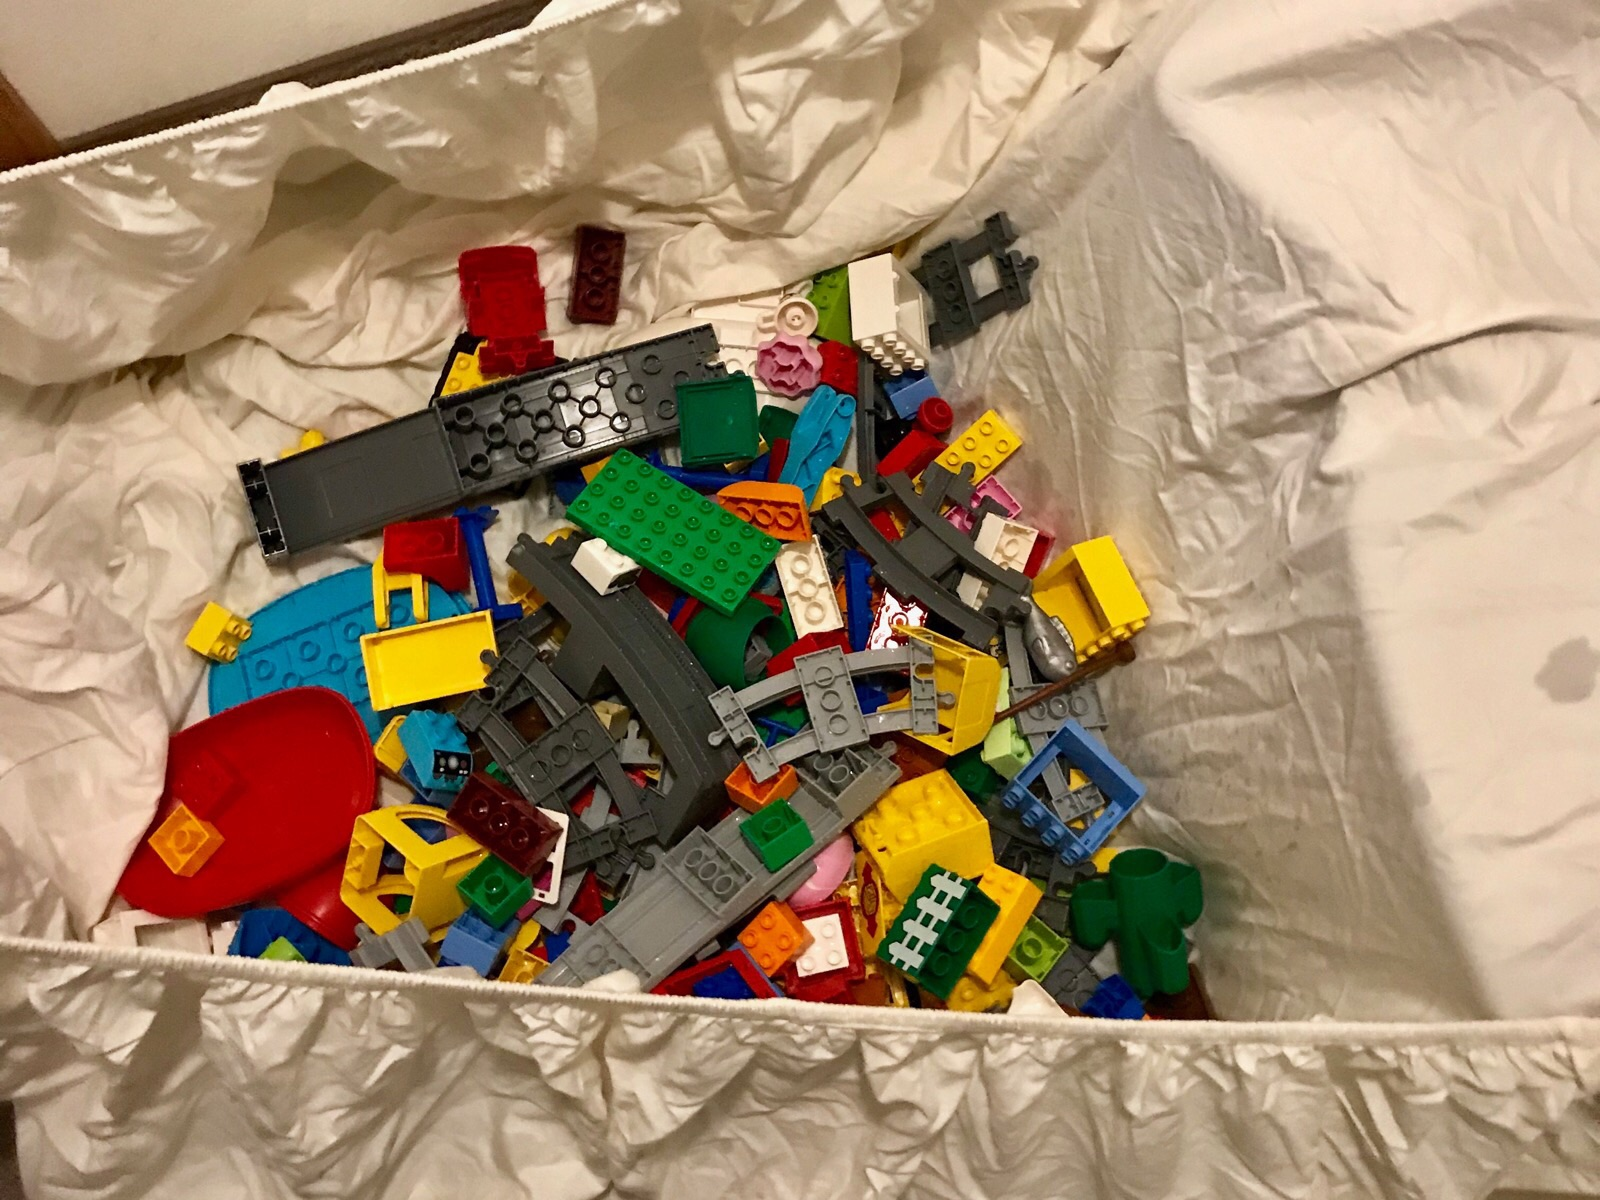 The sheet I used to catch the Duplos